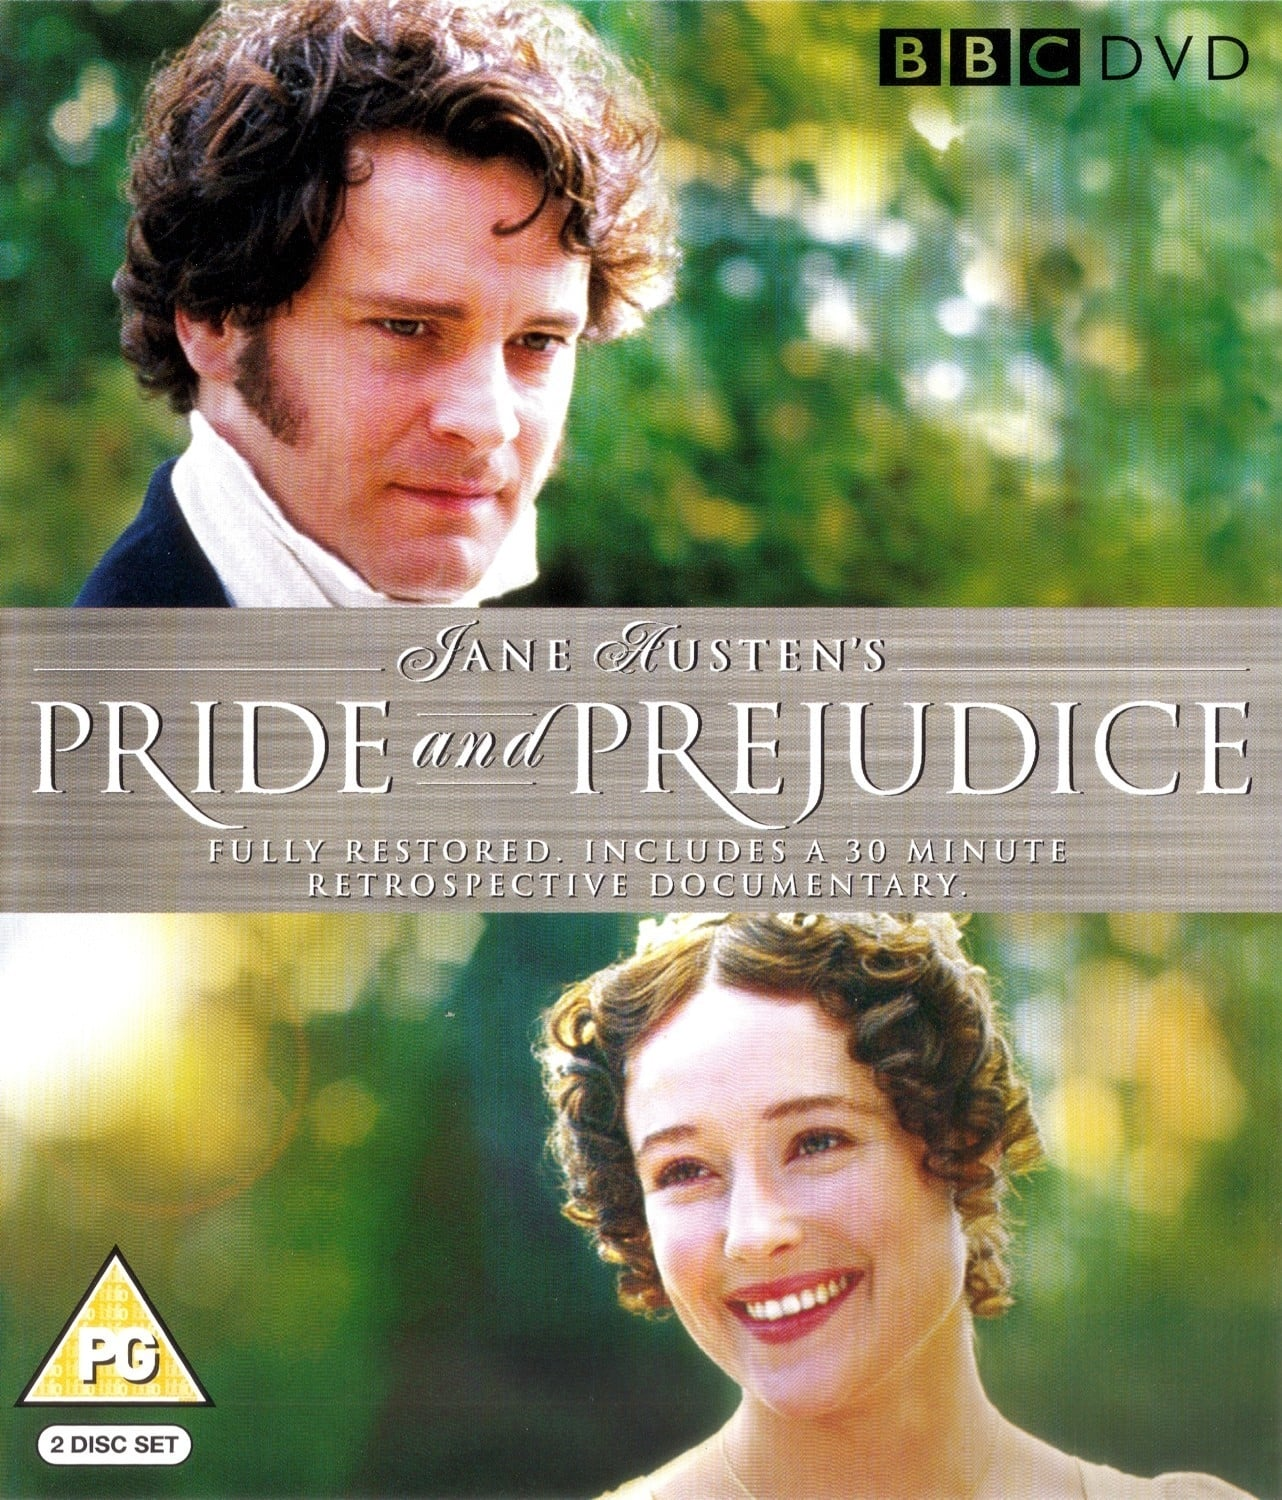 pride and prejudice essay titles Significance of title pride and prejudice the title can be centered around the relationship of mr darcy and elizabeth as stated by joann morse in her afterword to the novel, mr darcy and elizabeth move past the roles fixed for them to become full human beings with insight and understanding rather than flat figures of pride and prejudice.